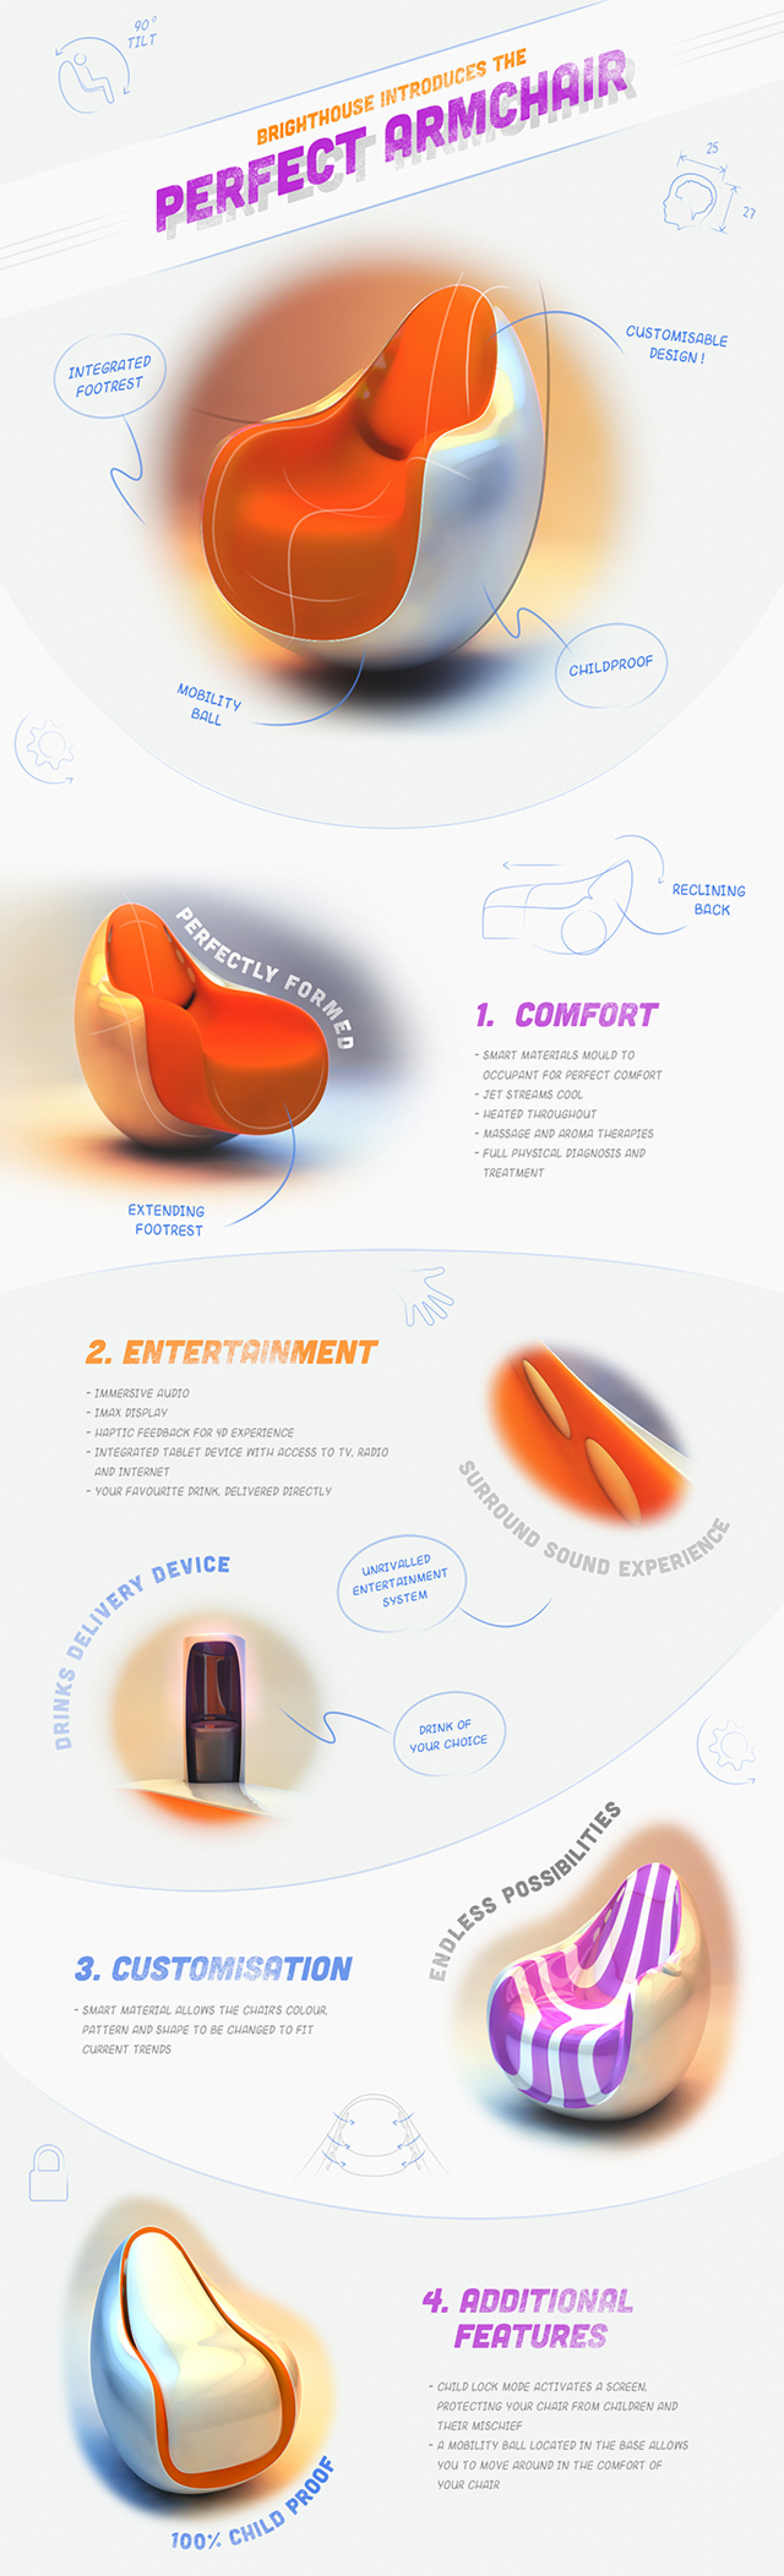 Perfect Armchair by Brighthouse Infographic